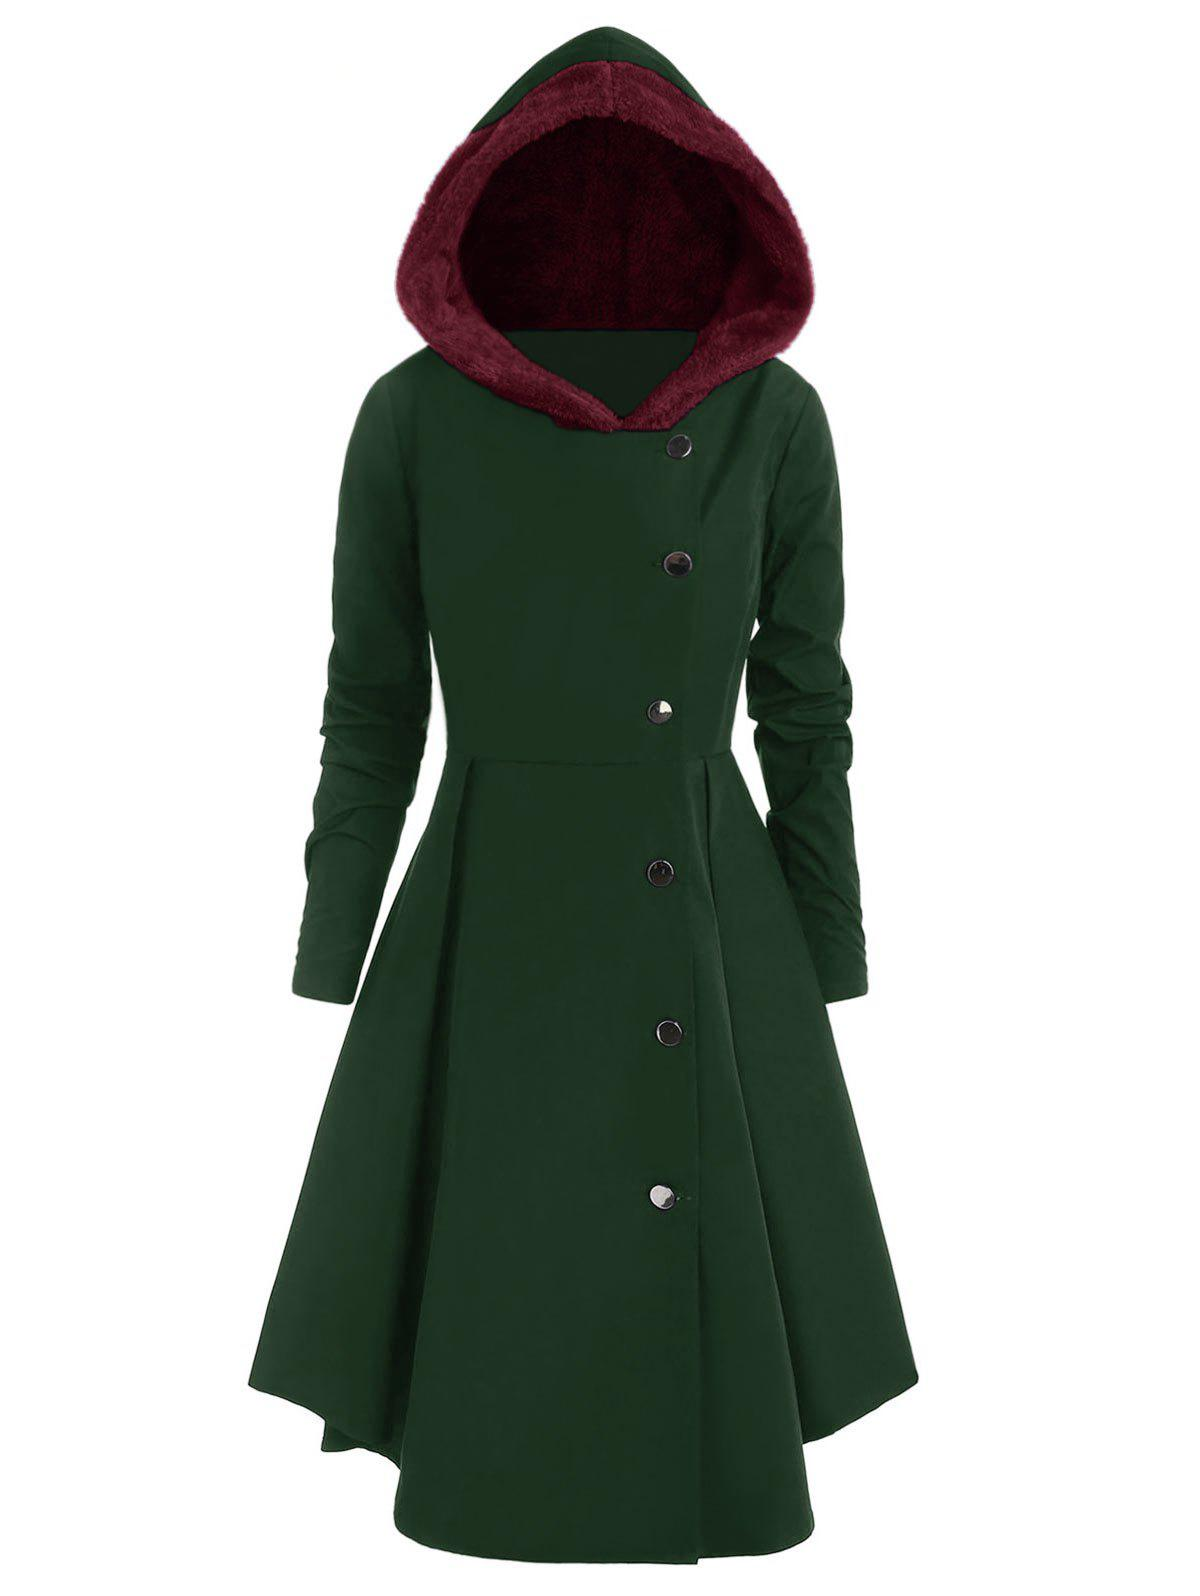 Plus Size Contrast Asymmetric Hooded Skirted Coat, Dark green